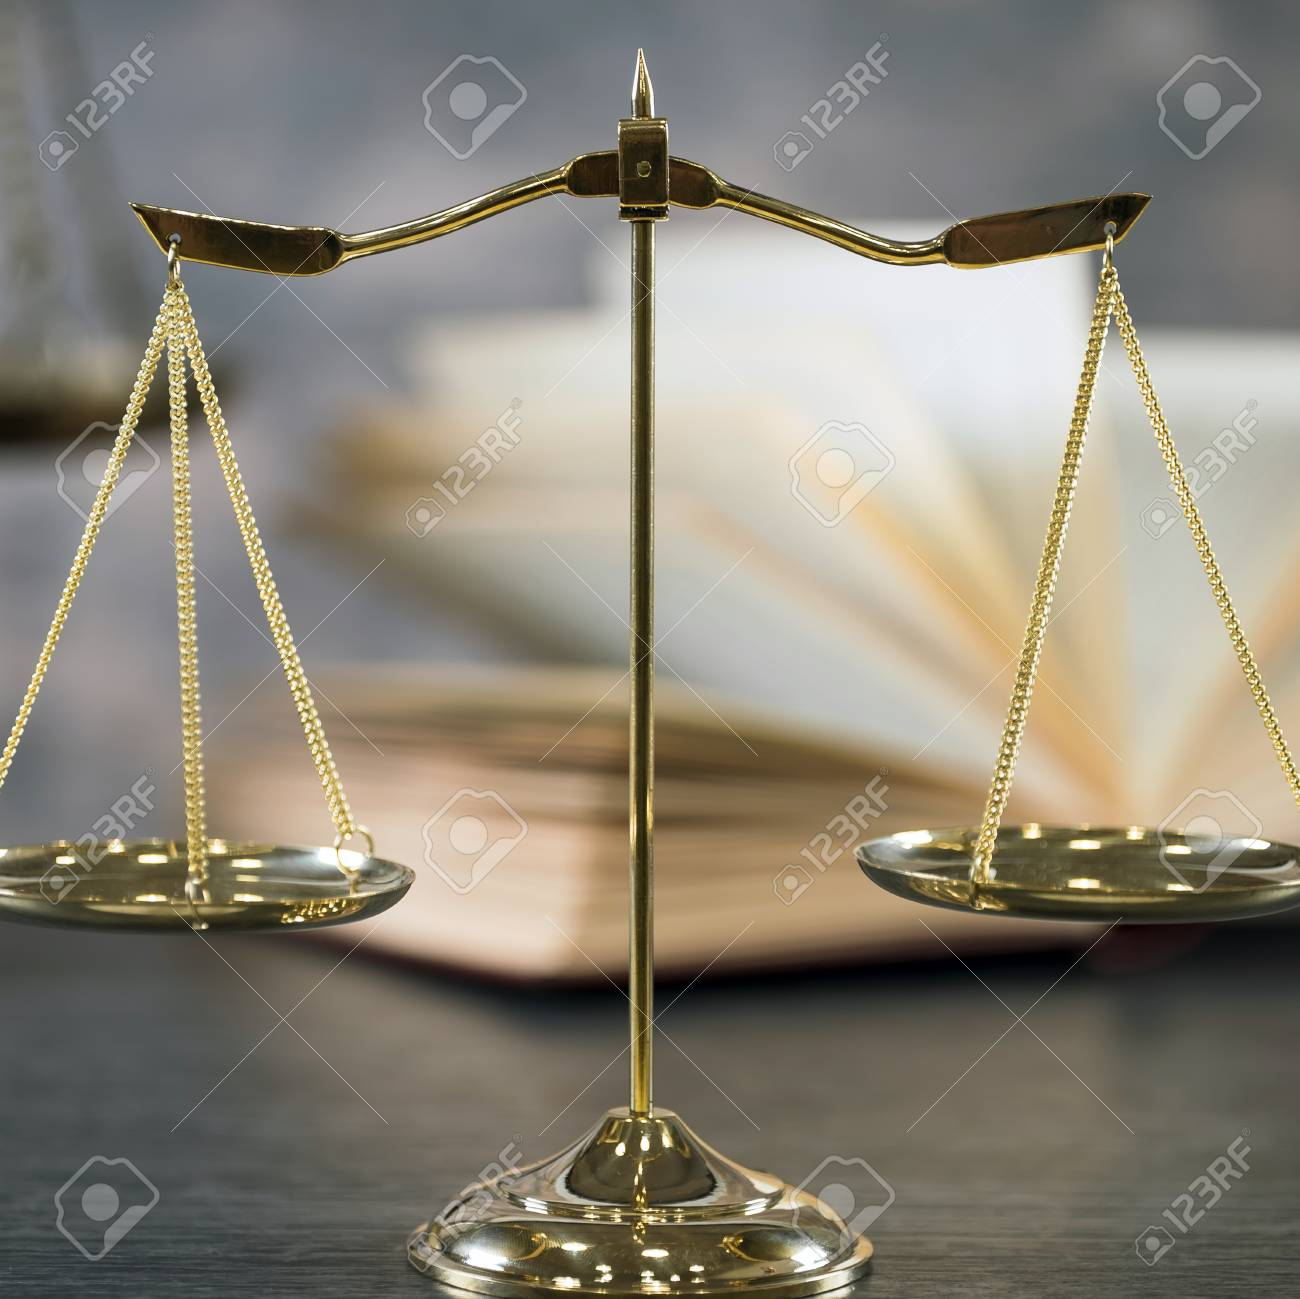 Symbols For Balance And Power In Law And Court Focus Only Narrow